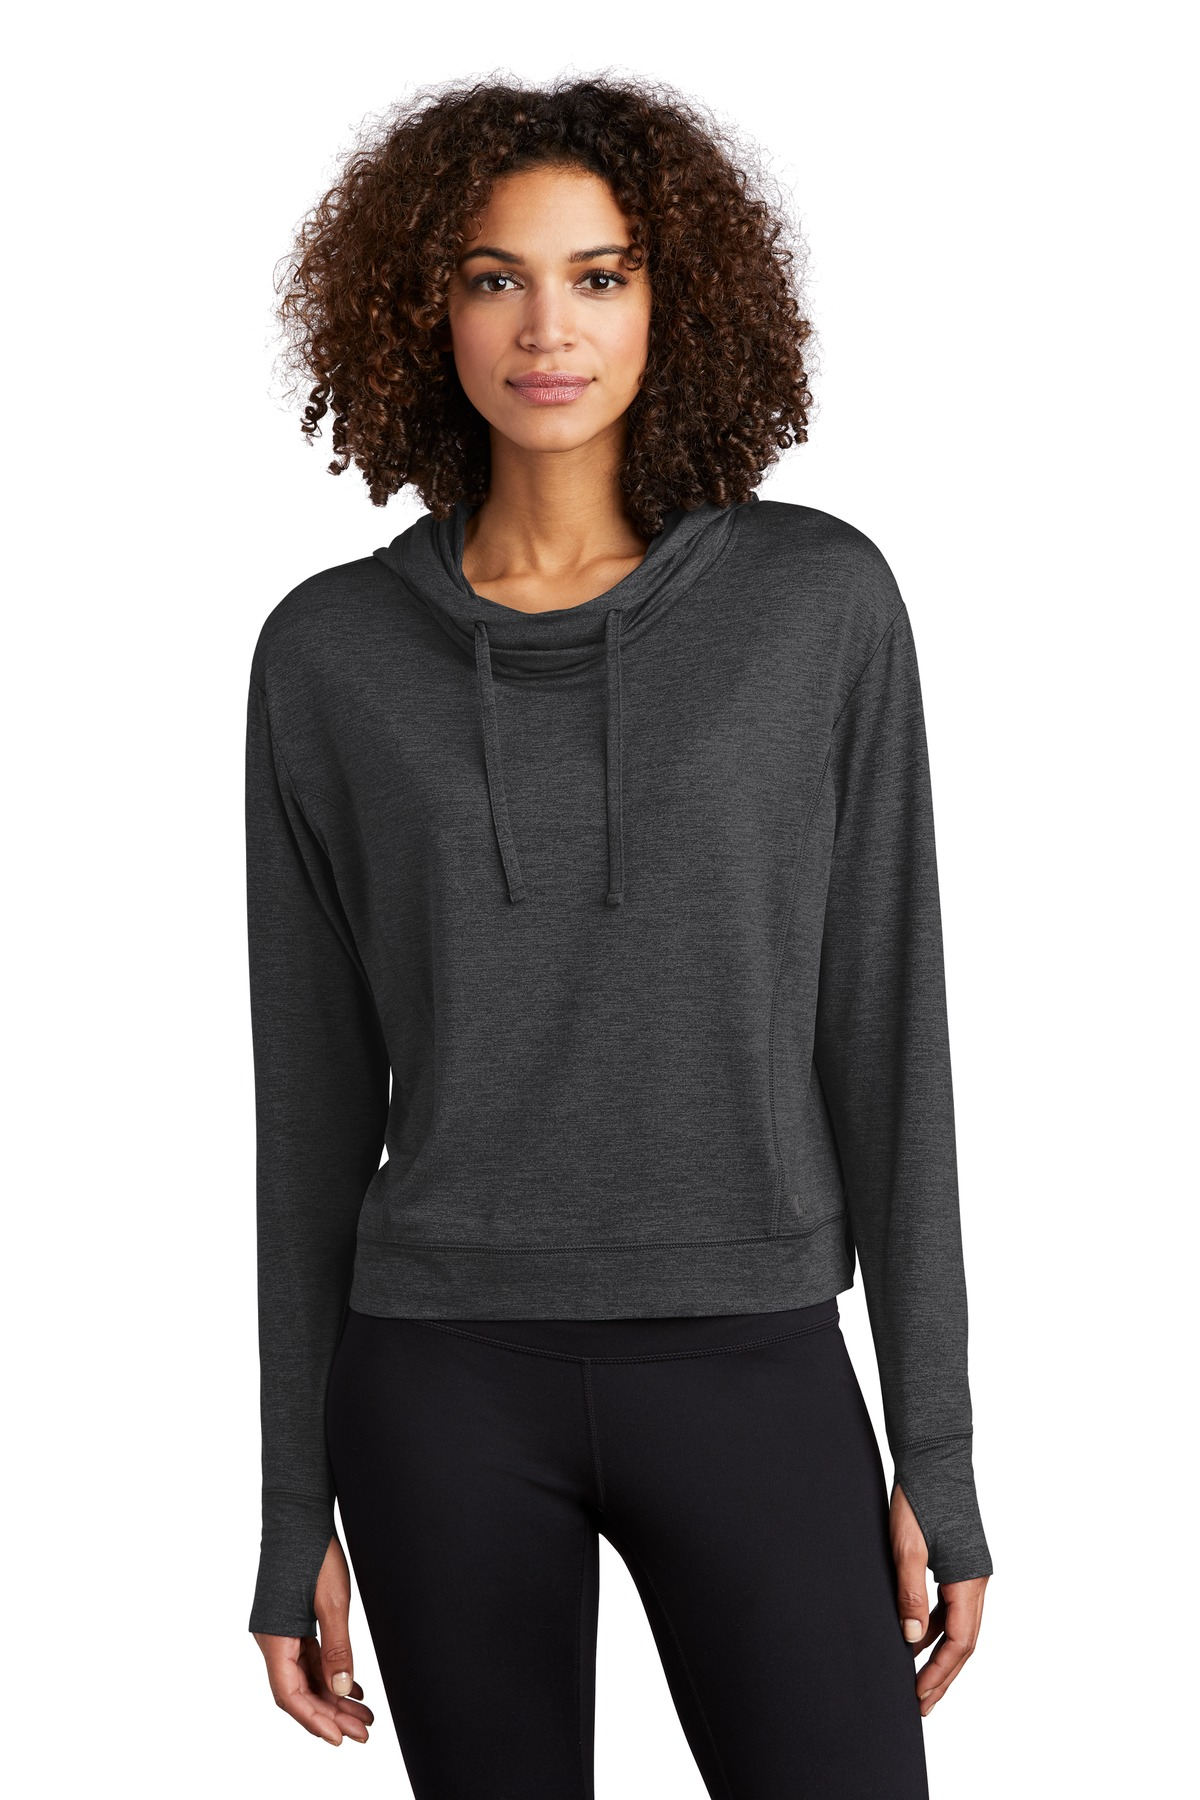 OGIO  ®  ENDURANCE Ladies Force Hoodie LOE342 - Blacktop Heather